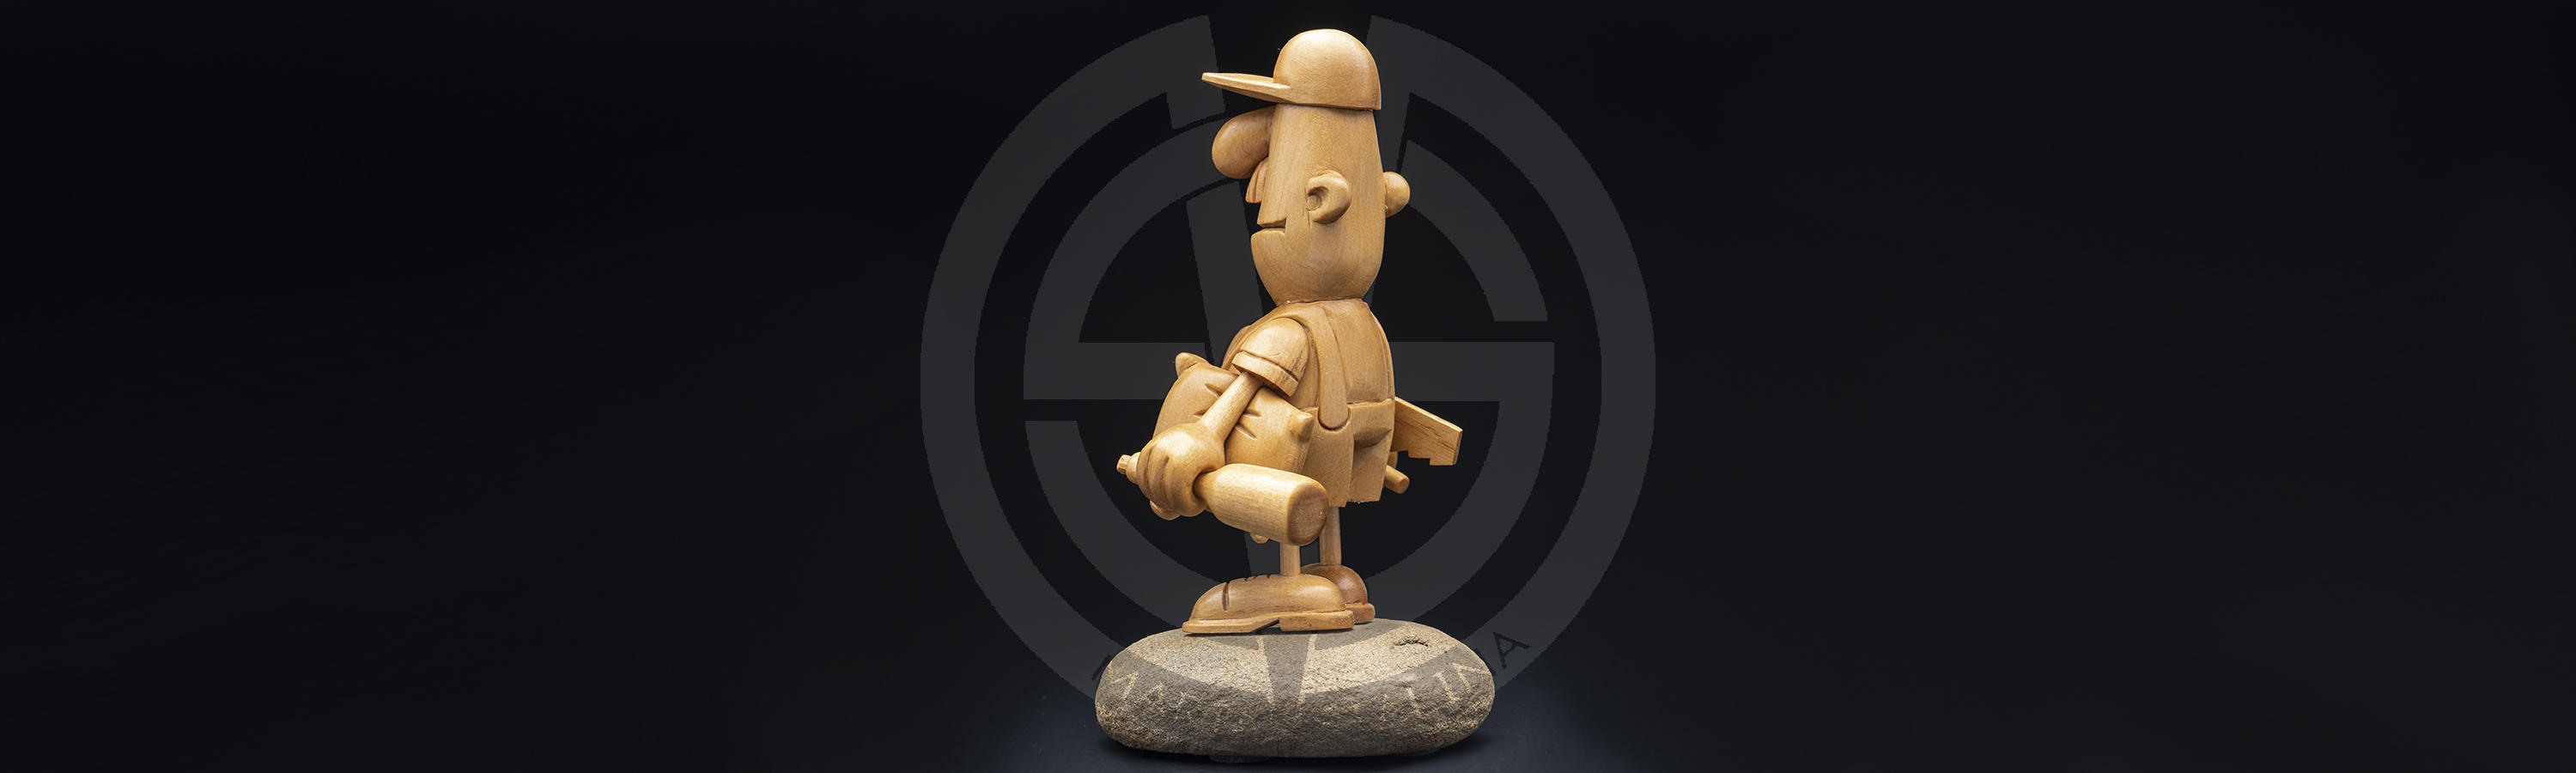 Humorous wooden plastic The Master